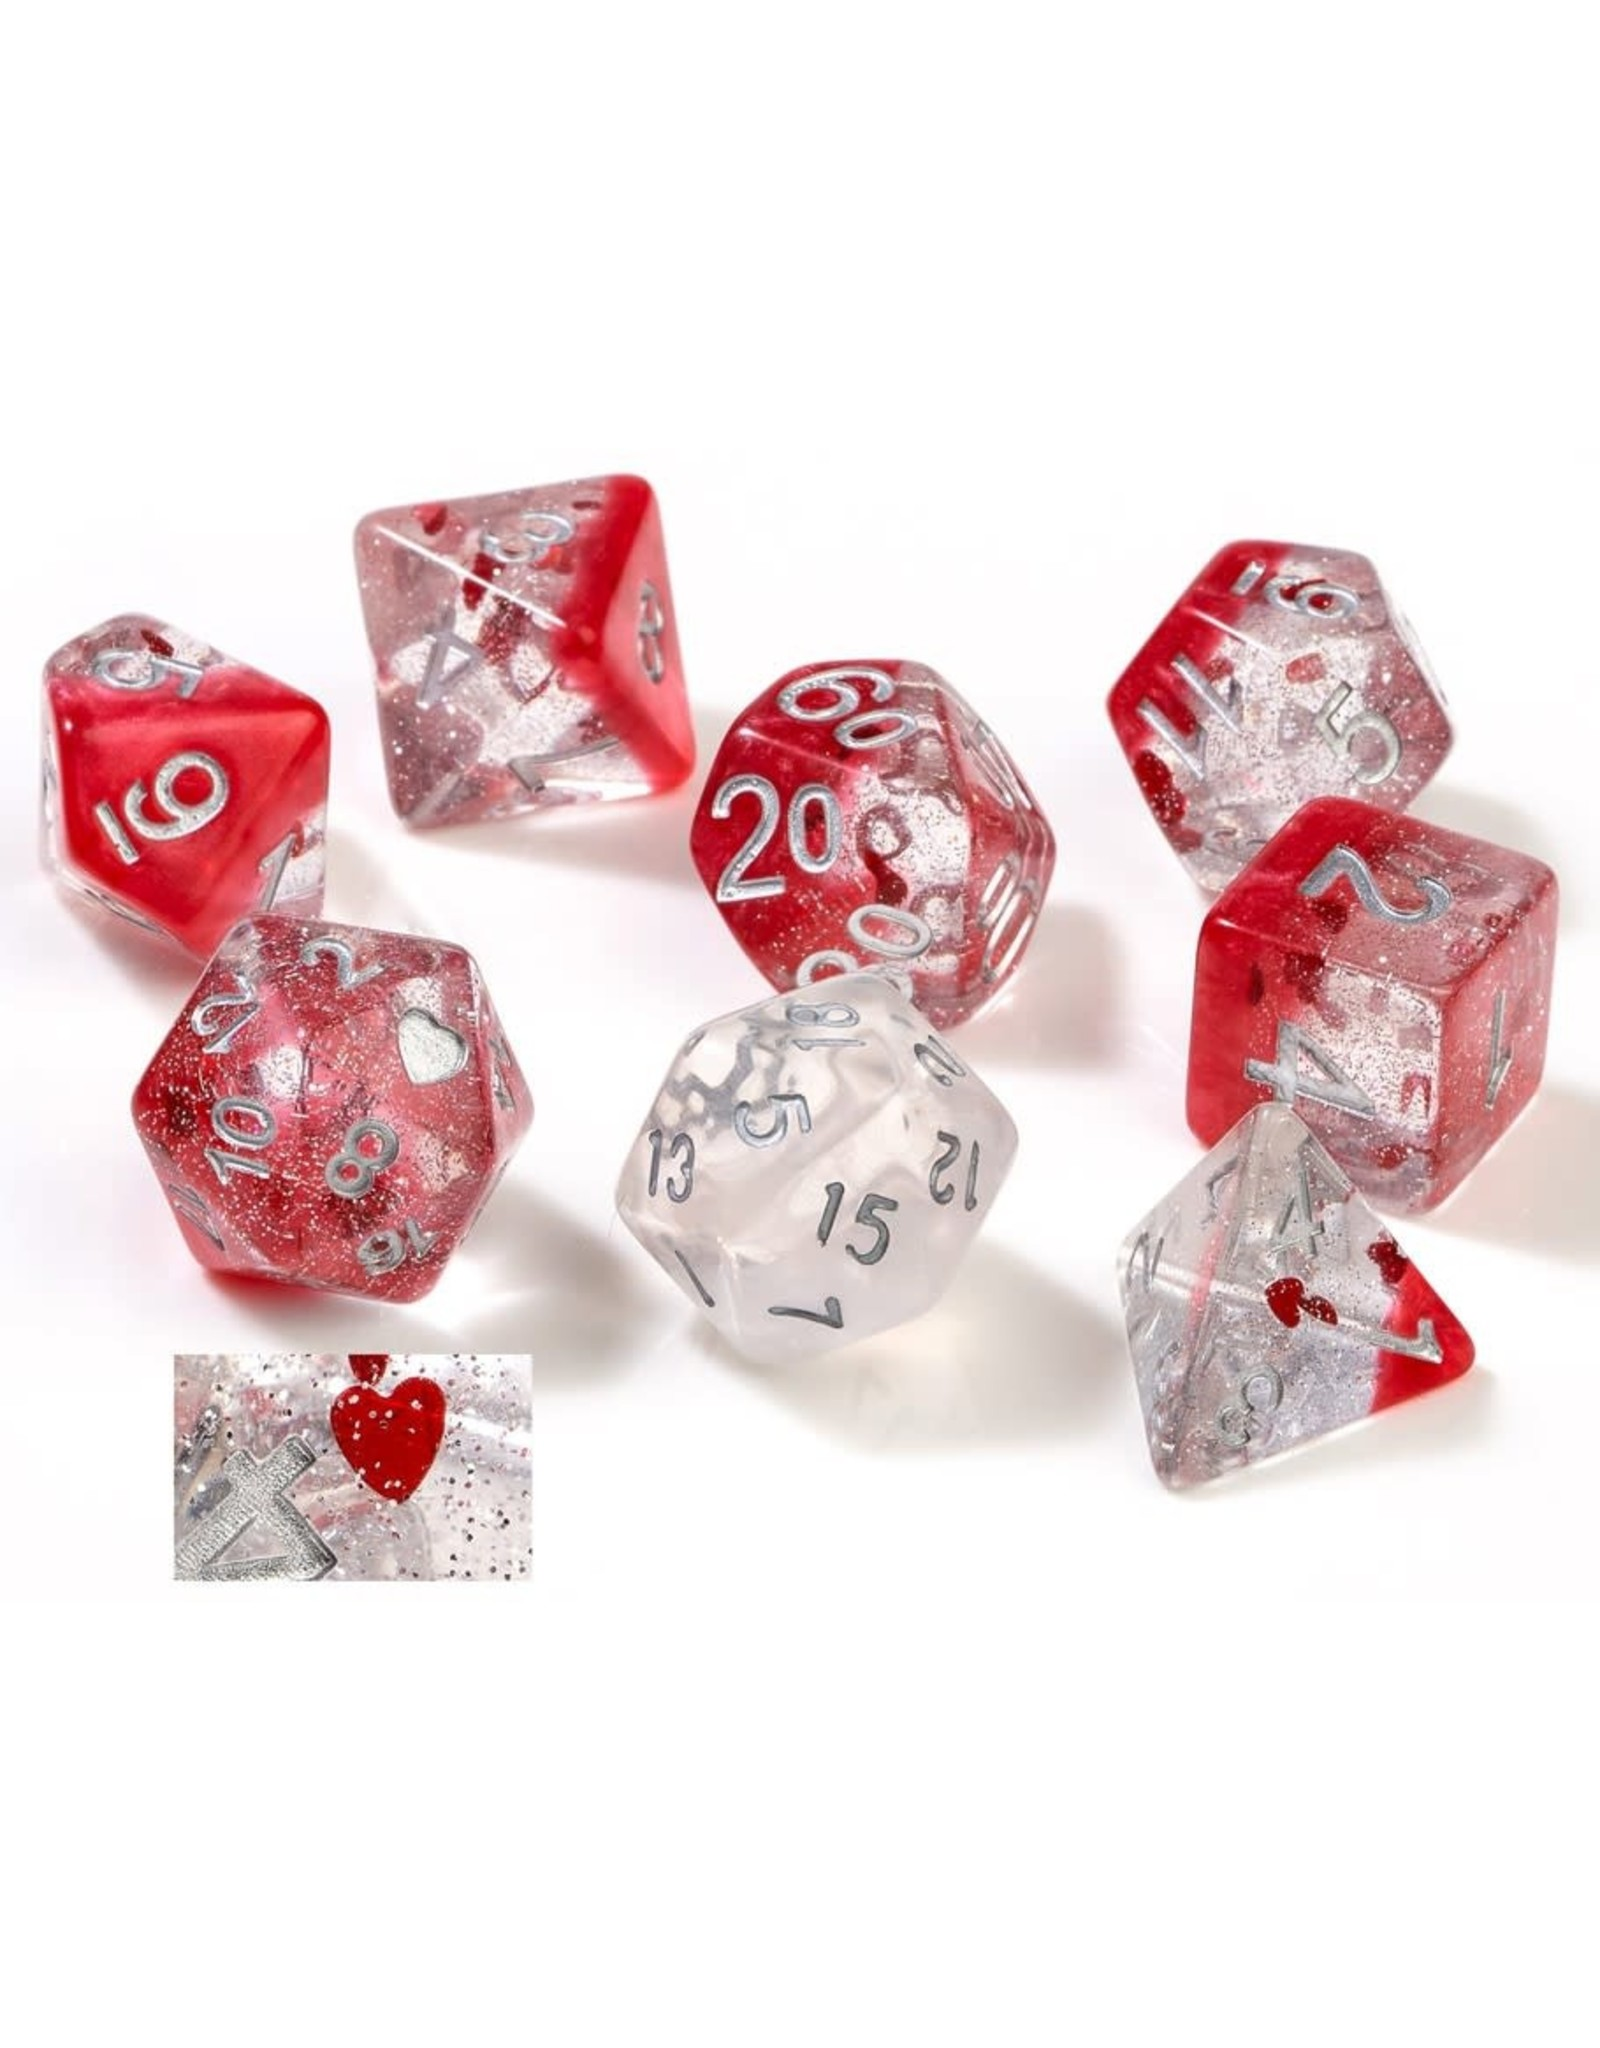 Sirius Dice RPG Dice (7) Set Hearts